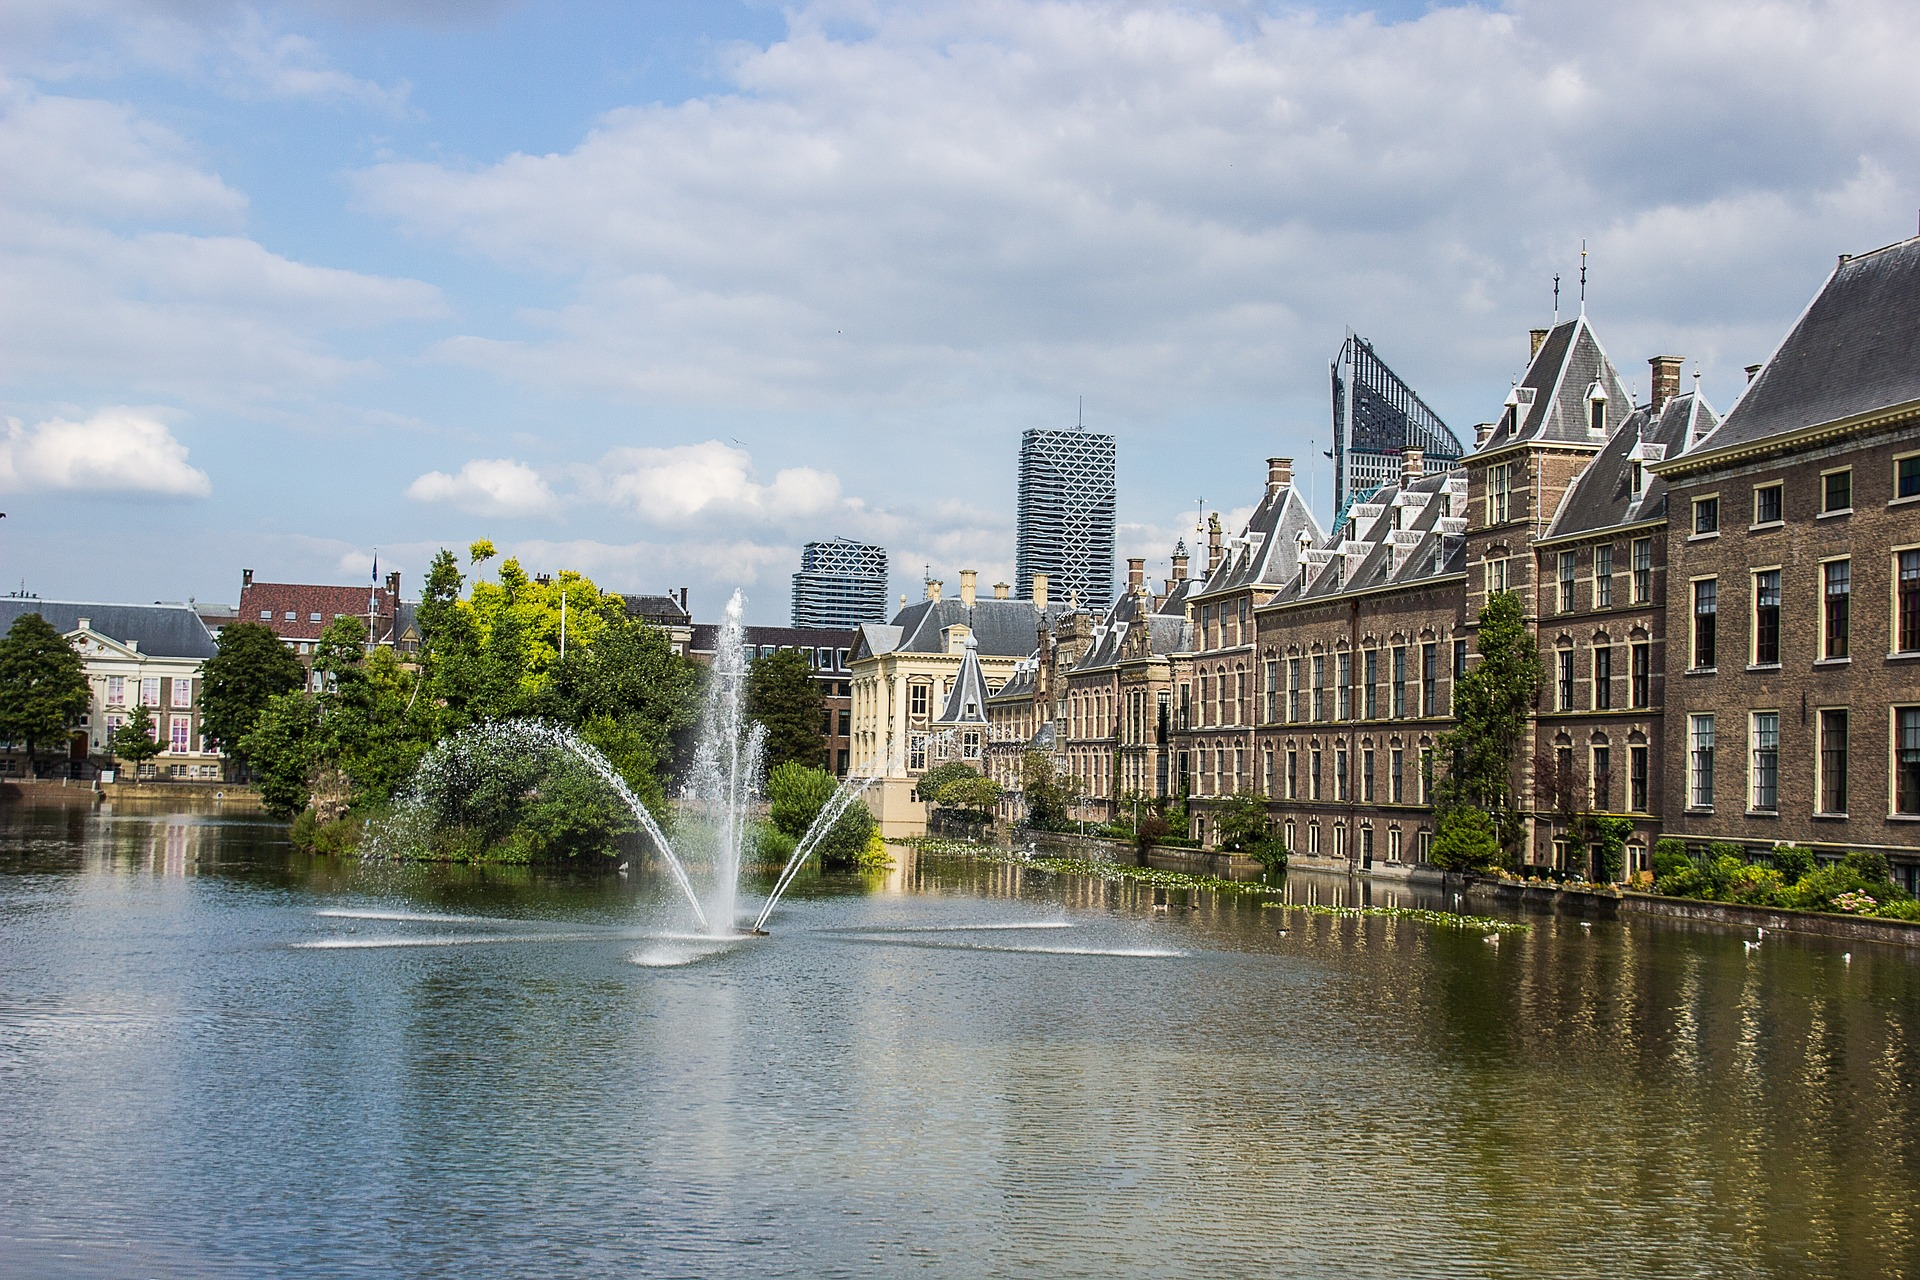 Image of the Hague